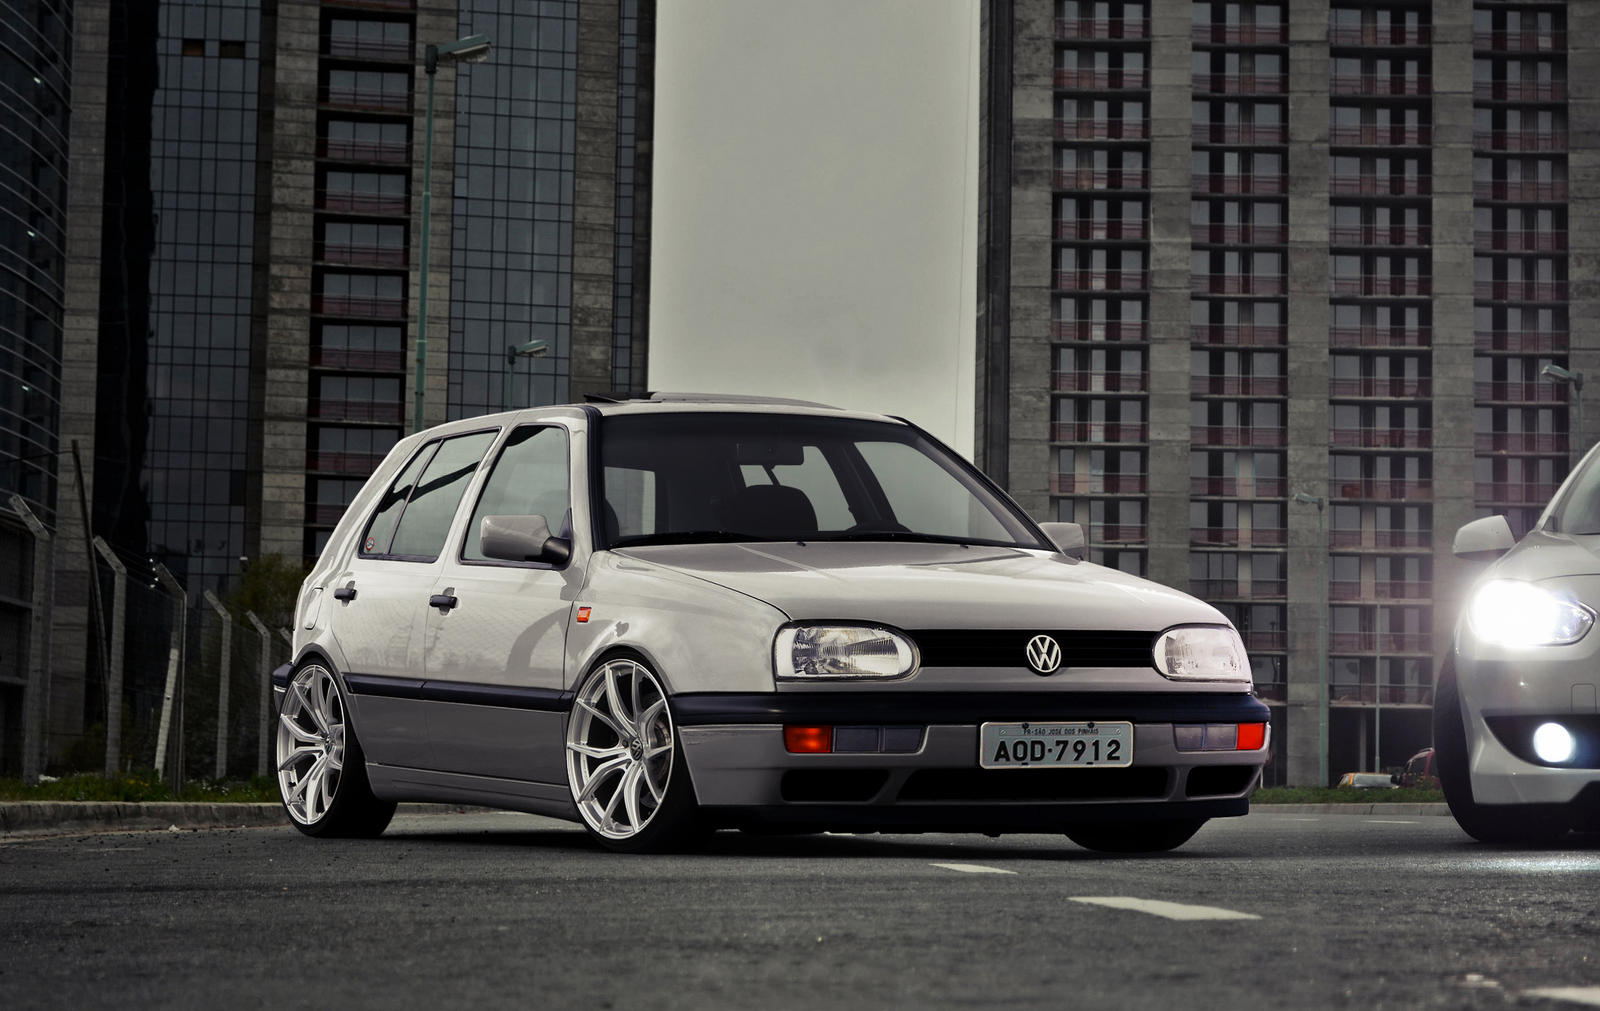 Wallpaper 03 likewise Vw Golf 2 Streetcar Tuning Power Stripes also Golf Mk3 386898659 further Wallpaper 39 in addition Watch. on vw gti wallpaper